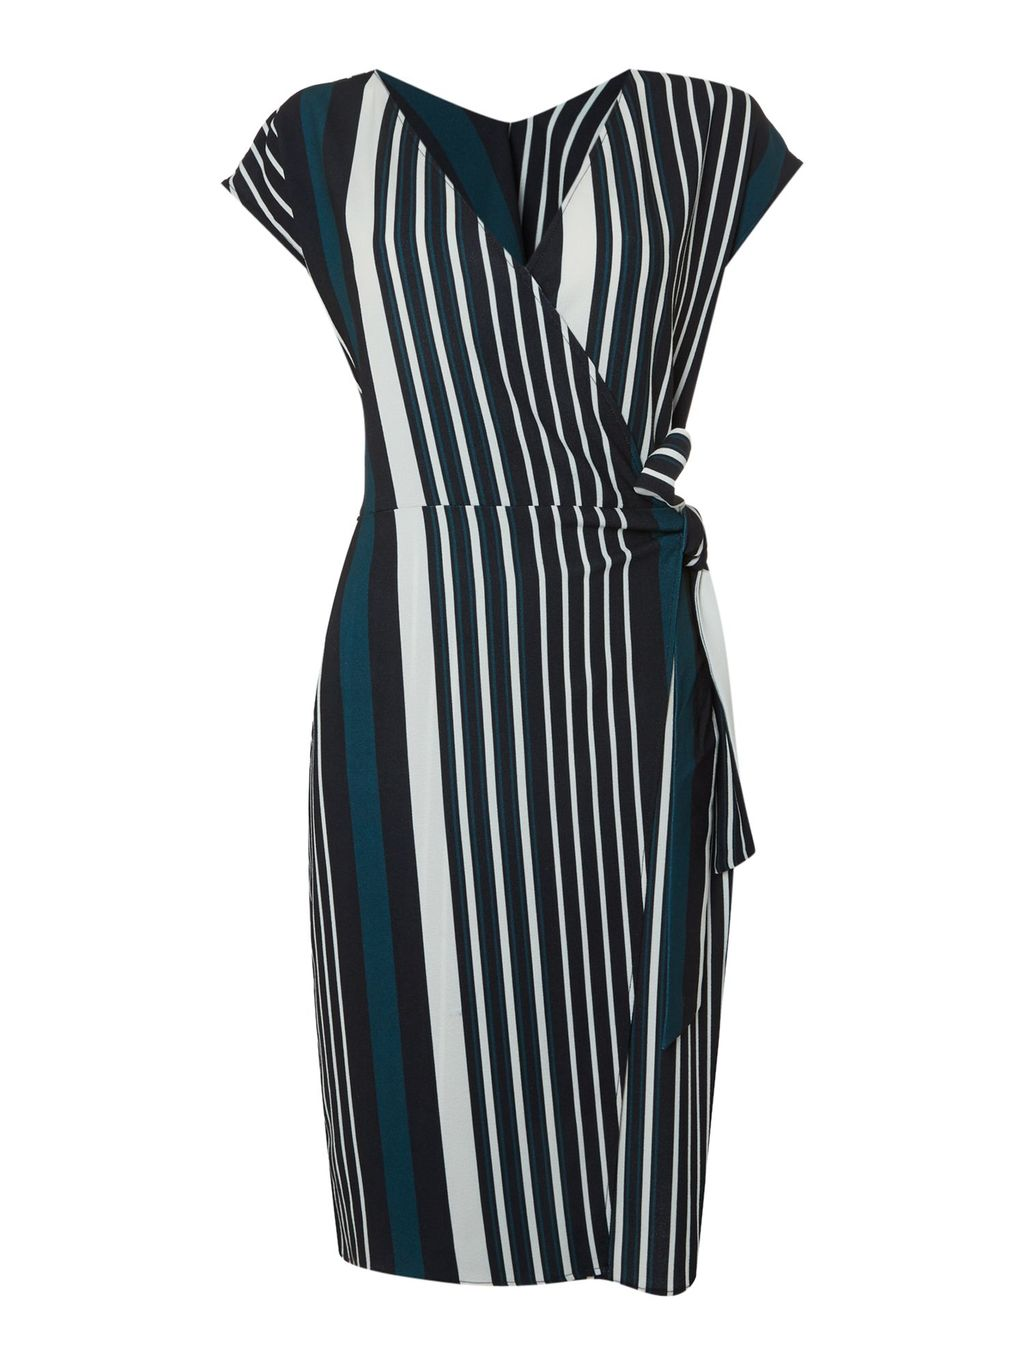 Luna Wrap Belted Dress, Multi Coloured - style: faux wrap/wrap; neckline: v-neck; sleeve style: capped; pattern: striped; predominant colour: navy; secondary colour: teal; length: on the knee; fit: body skimming; fibres: polyester/polyamide - stretch; sleeve length: short sleeve; pattern type: fabric; texture group: other - light to midweight; occasions: creative work; multicoloured: multicoloured; season: s/s 2016; wardrobe: highlight